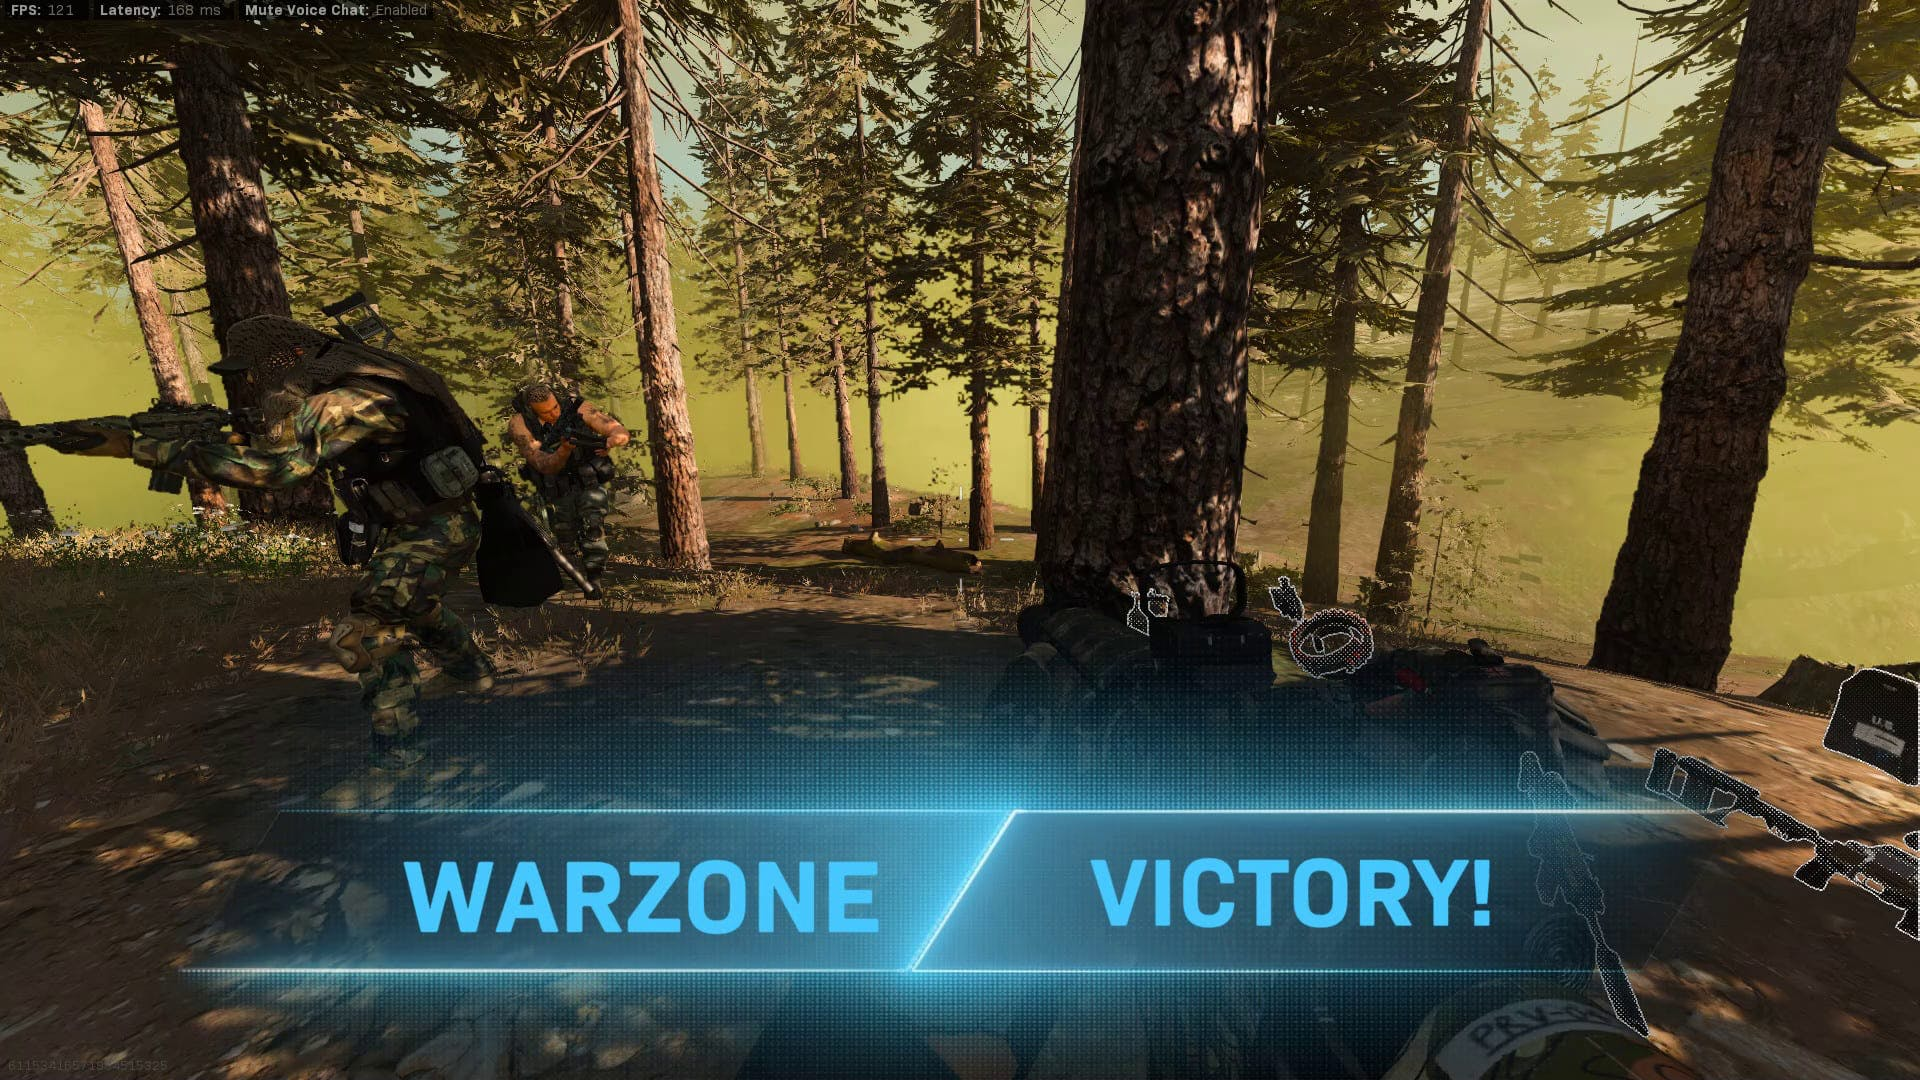 Warzone Victory Screen